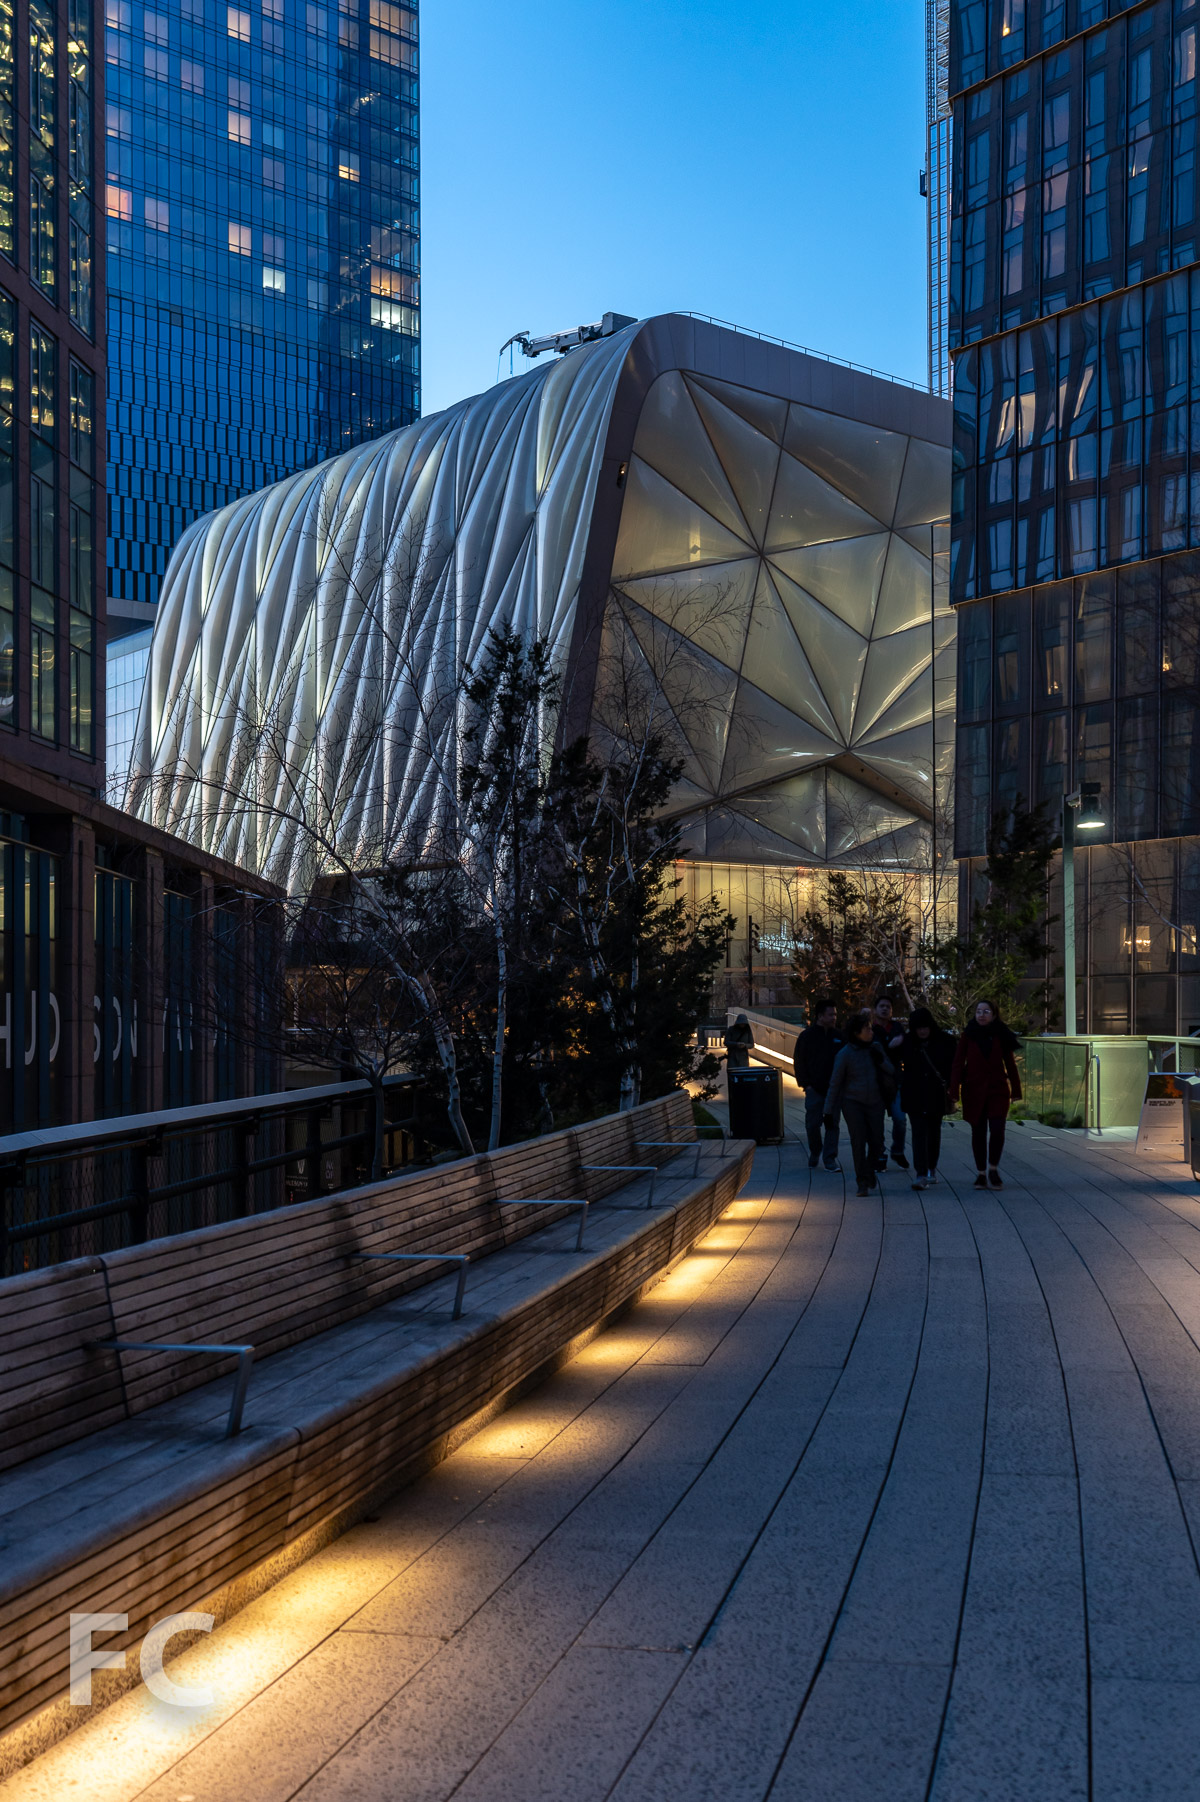 2019_03_30-The Shed at Hudson Yards-DSC09803.jpg